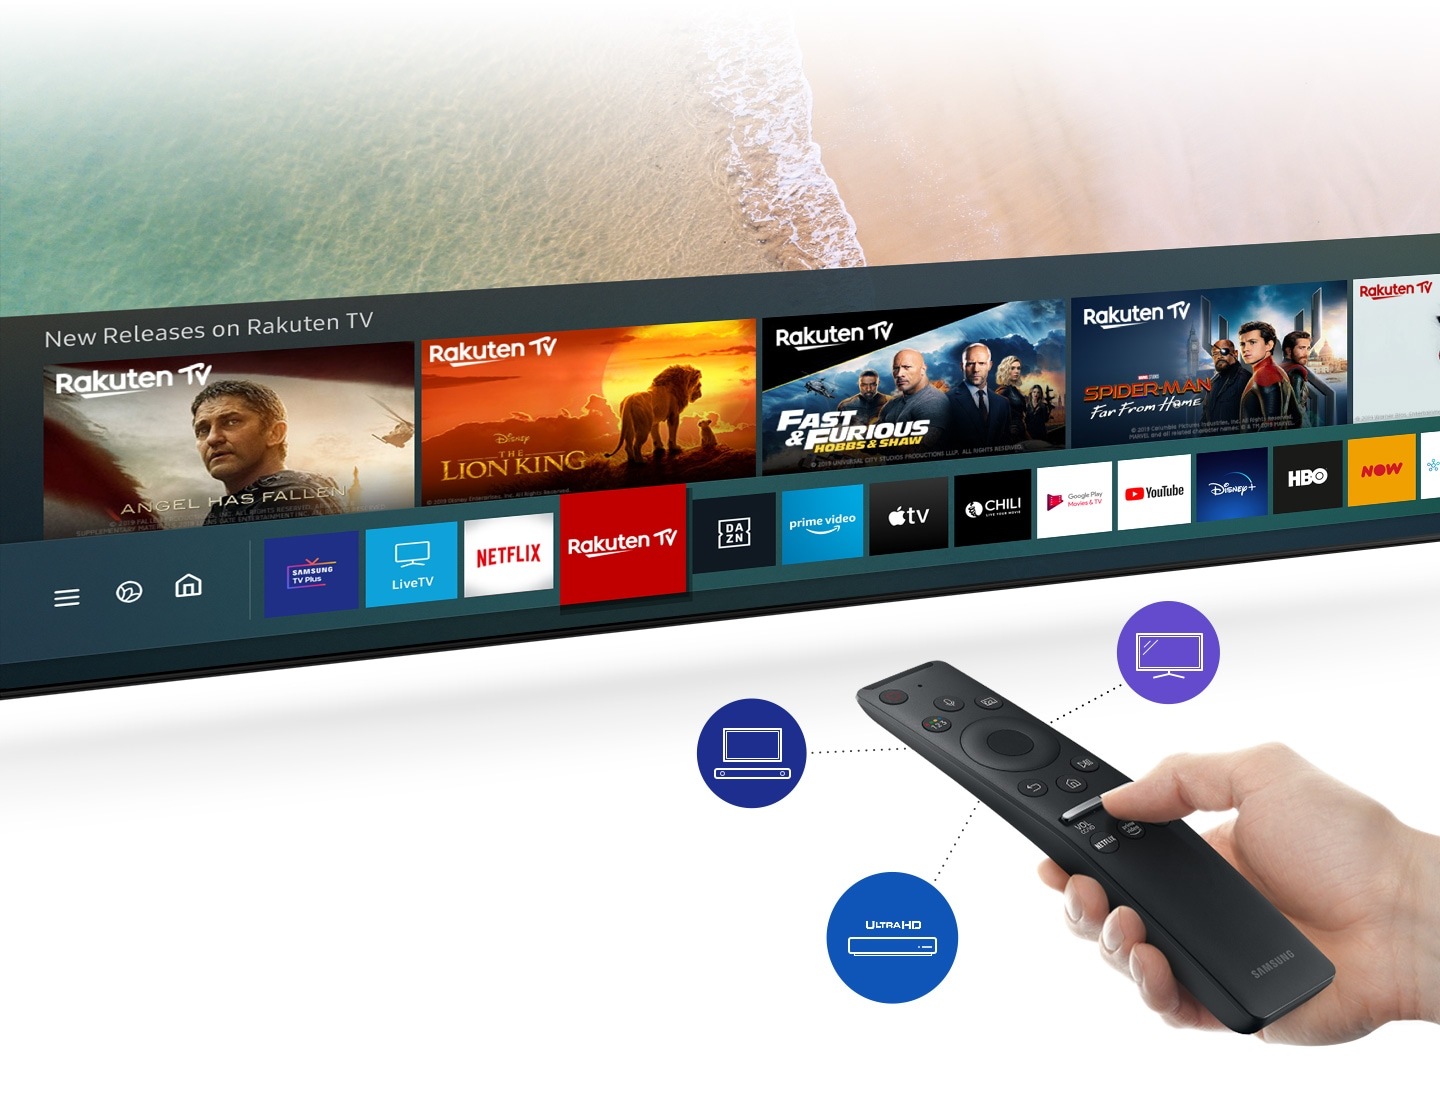 Access a variety of content with a single remote control